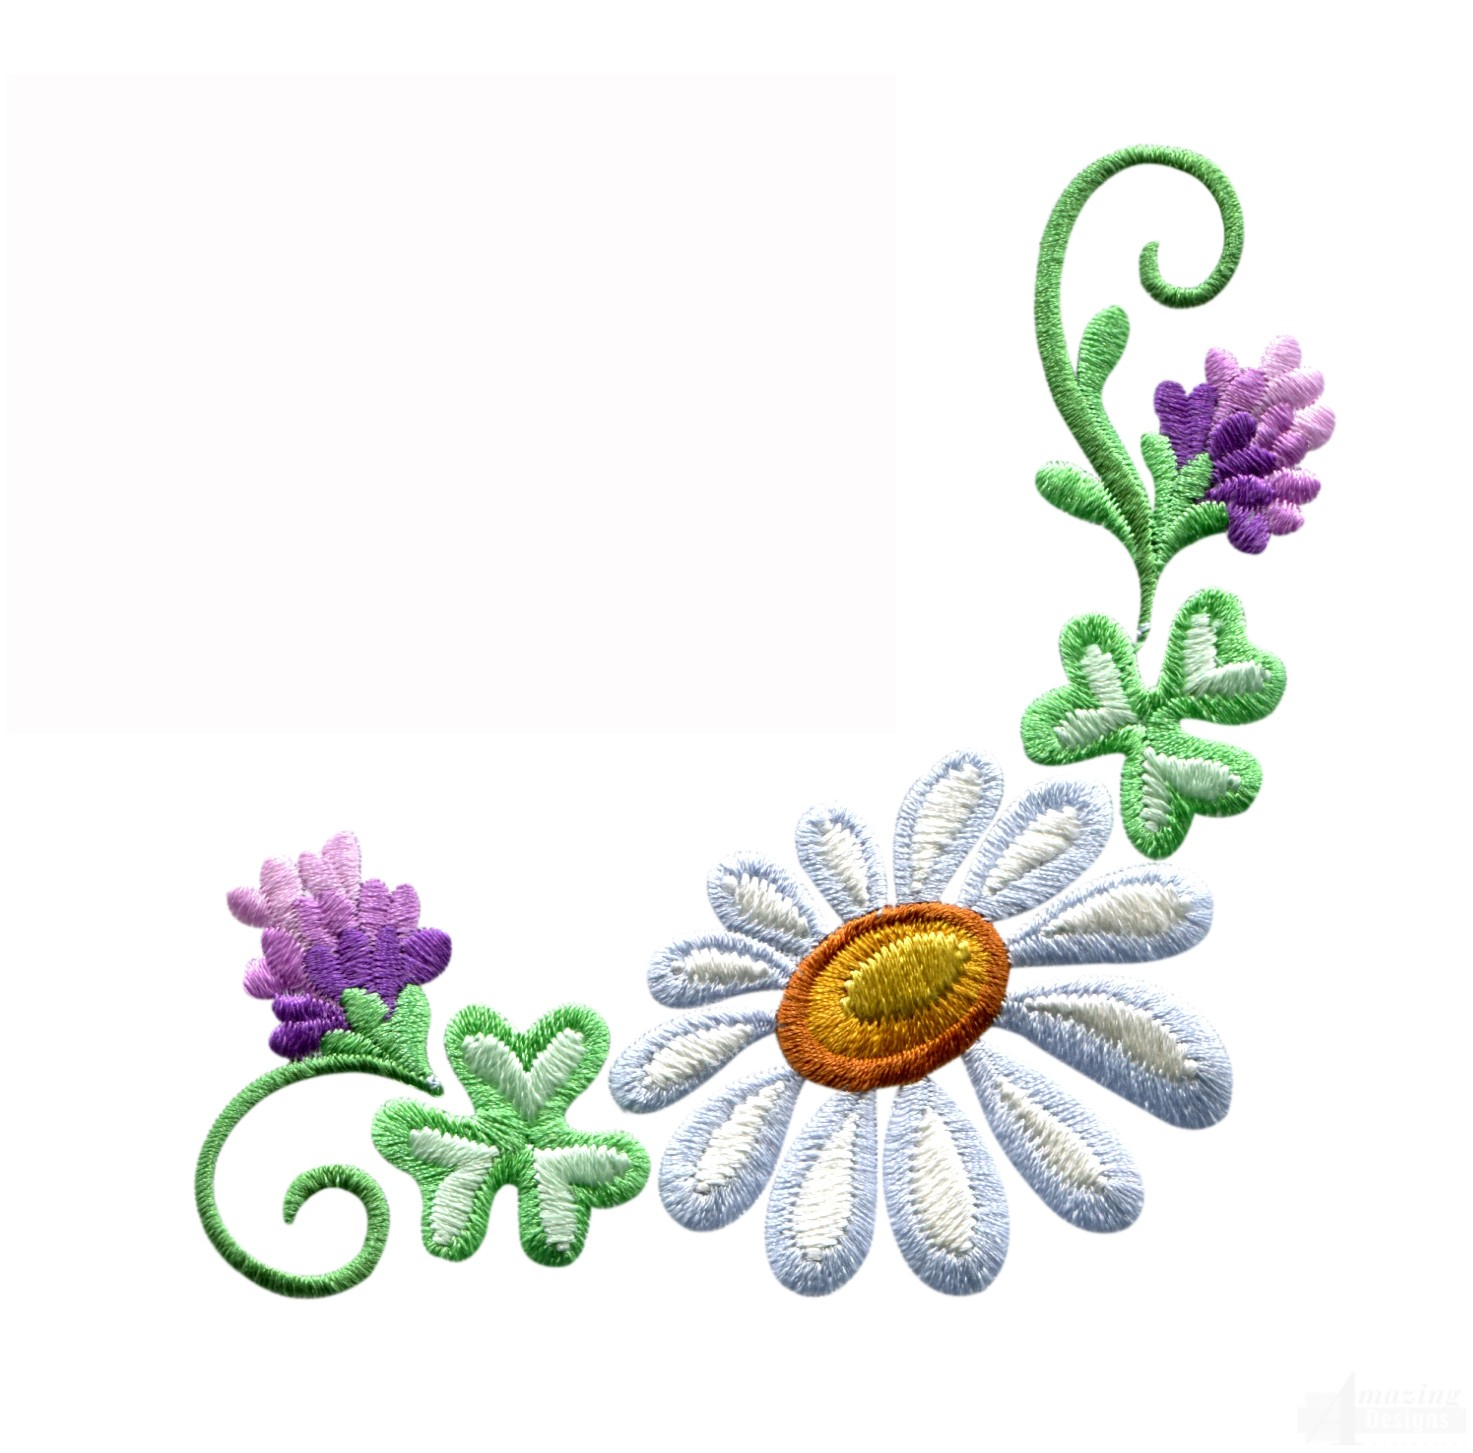 Floral Border Embroidery Designs